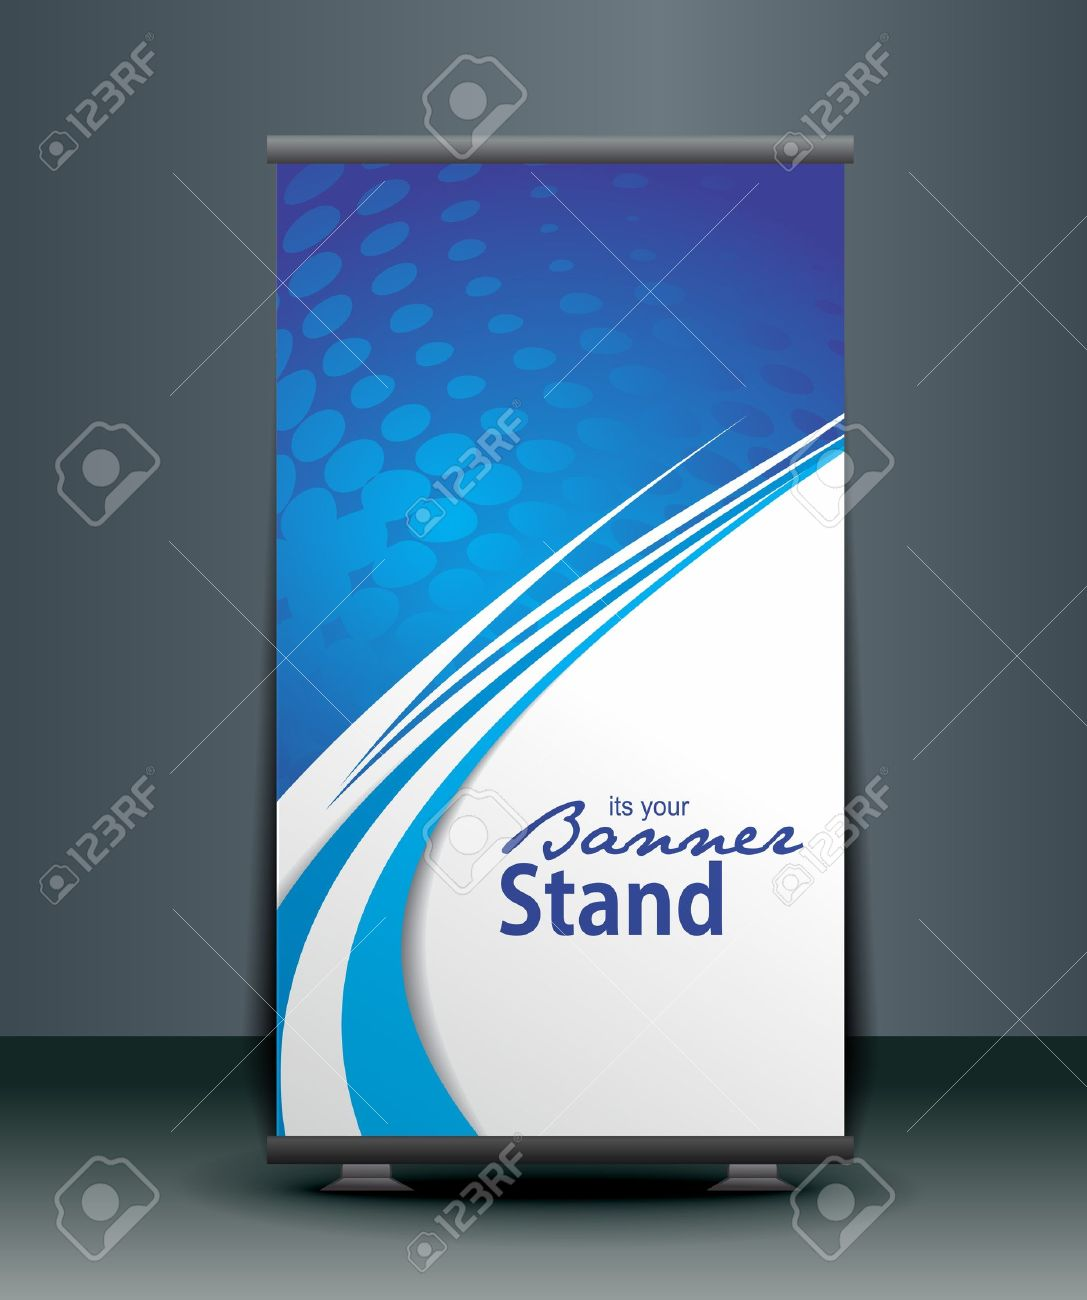 a roll-up display with stand banner template design, vector illustration. Stock Vector - 10497593